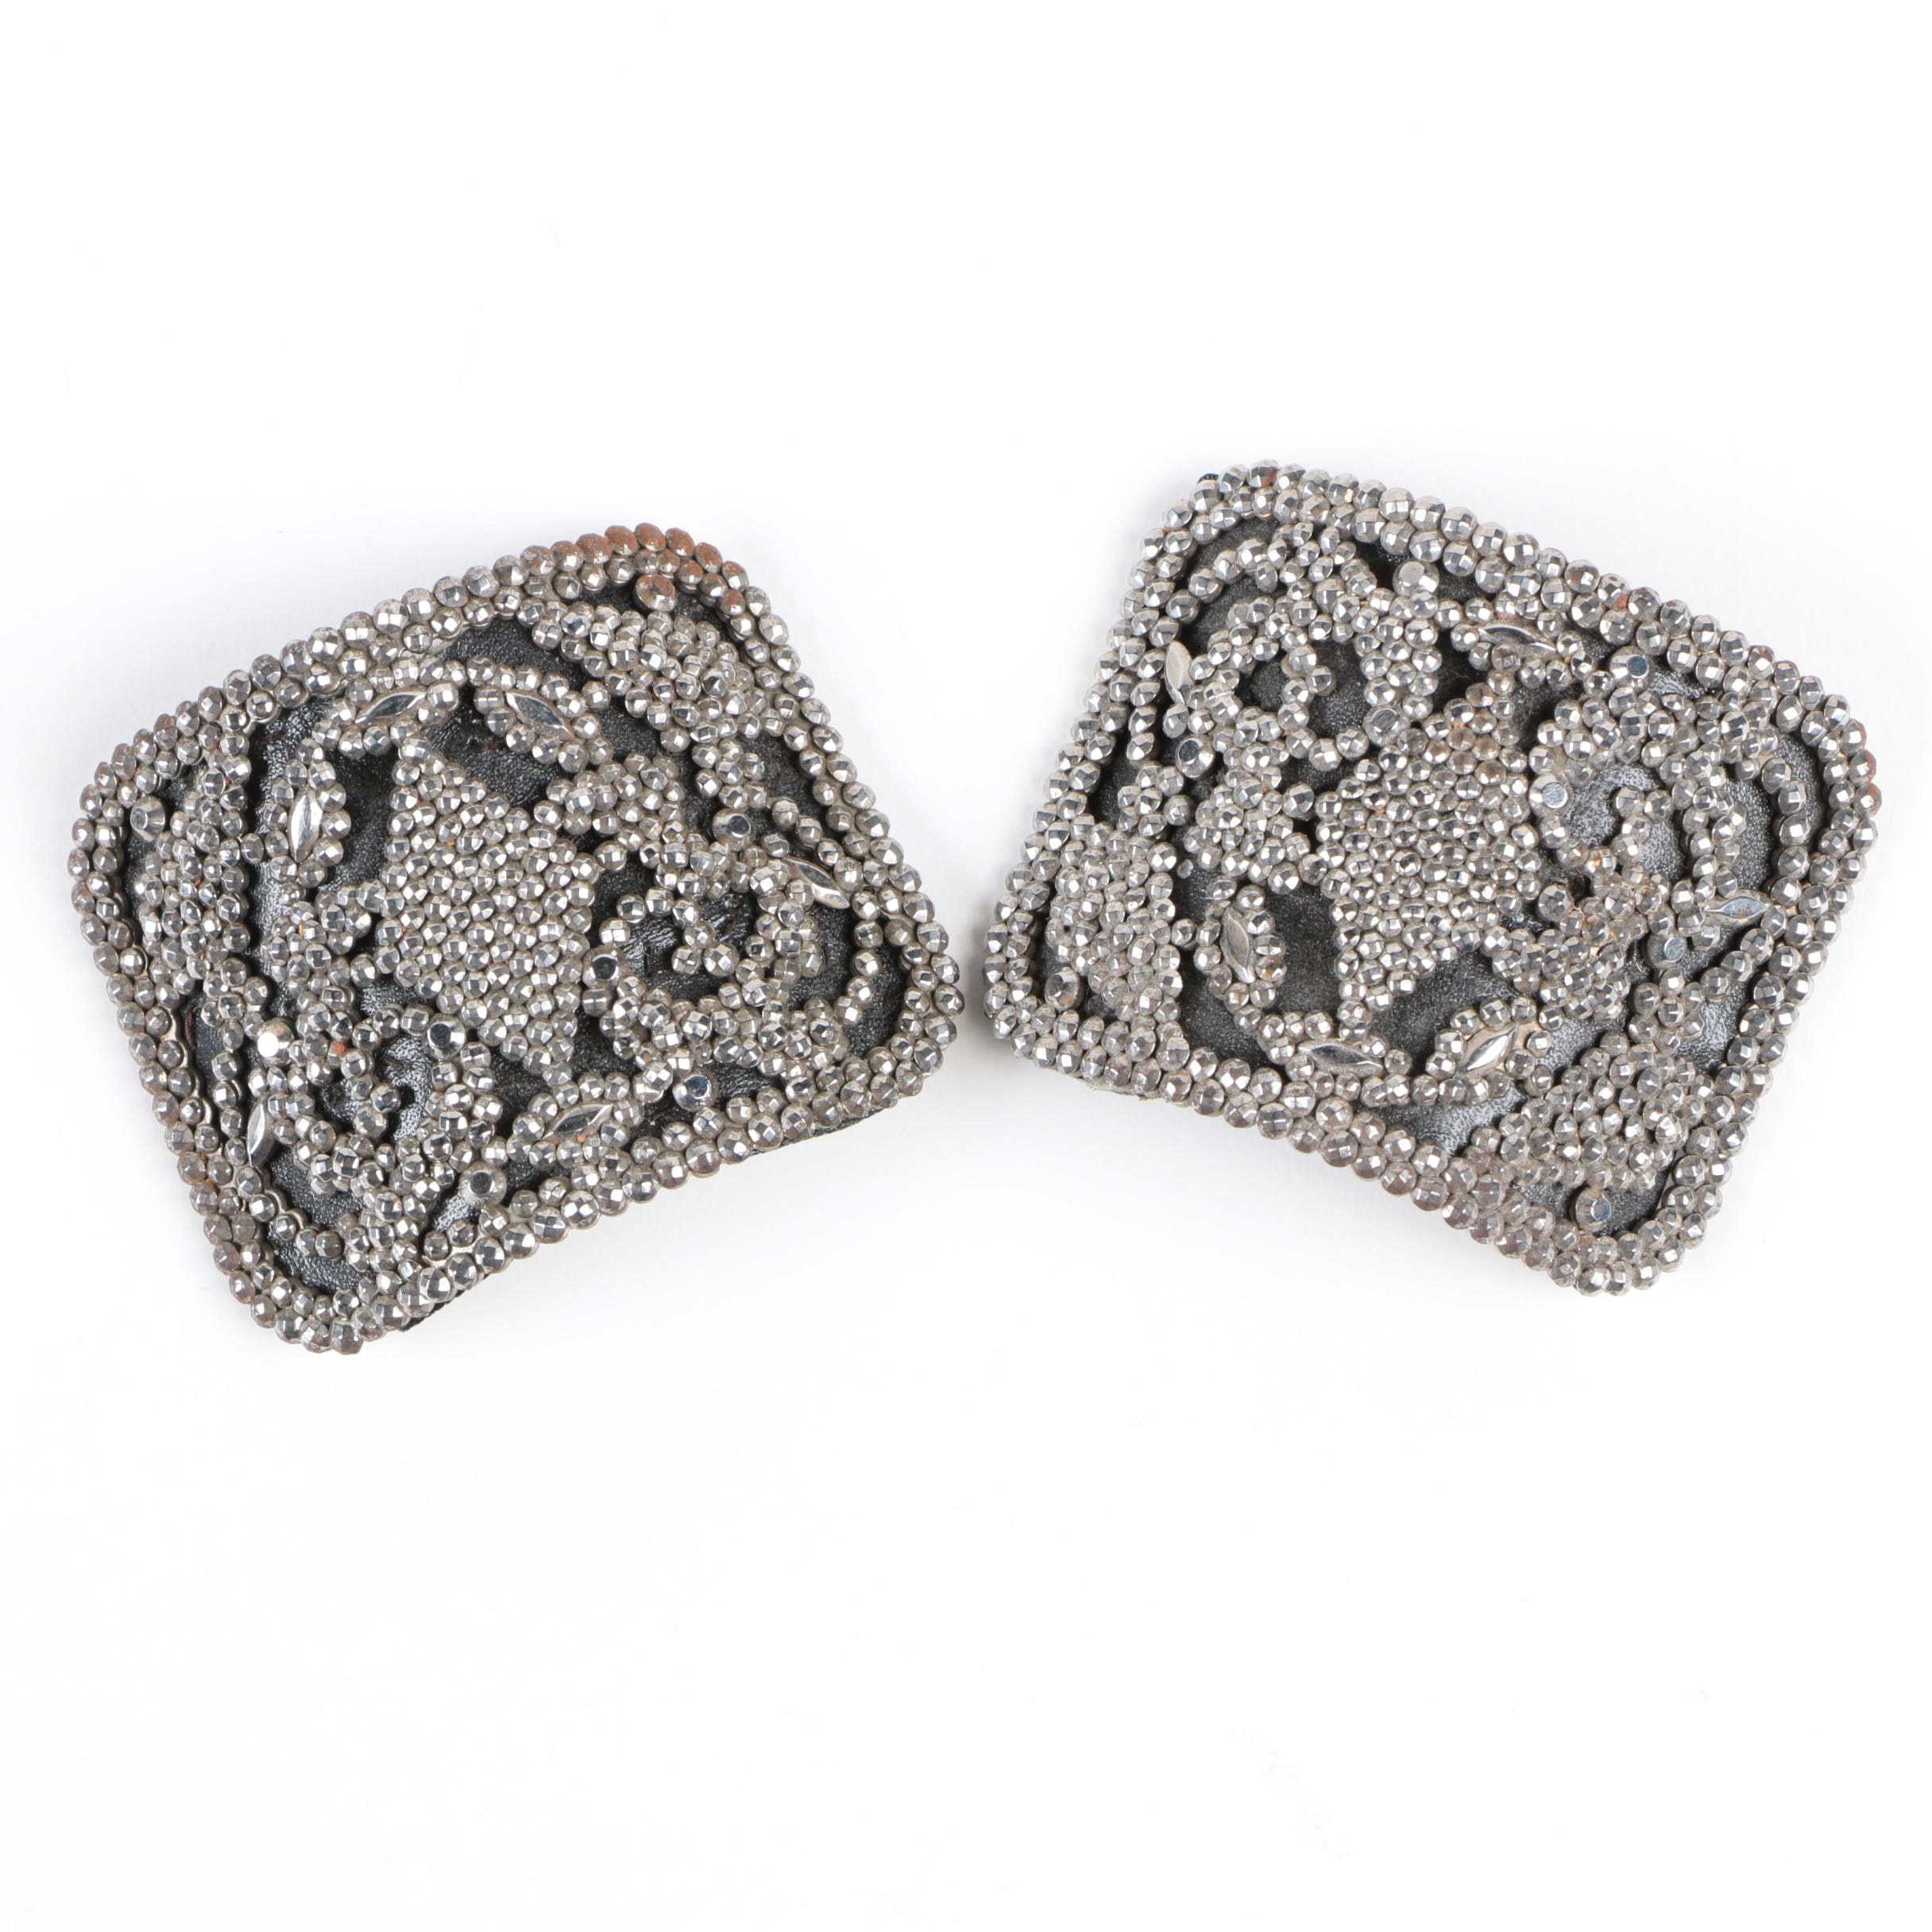 French Cut Steel Rhinestone Barrettes